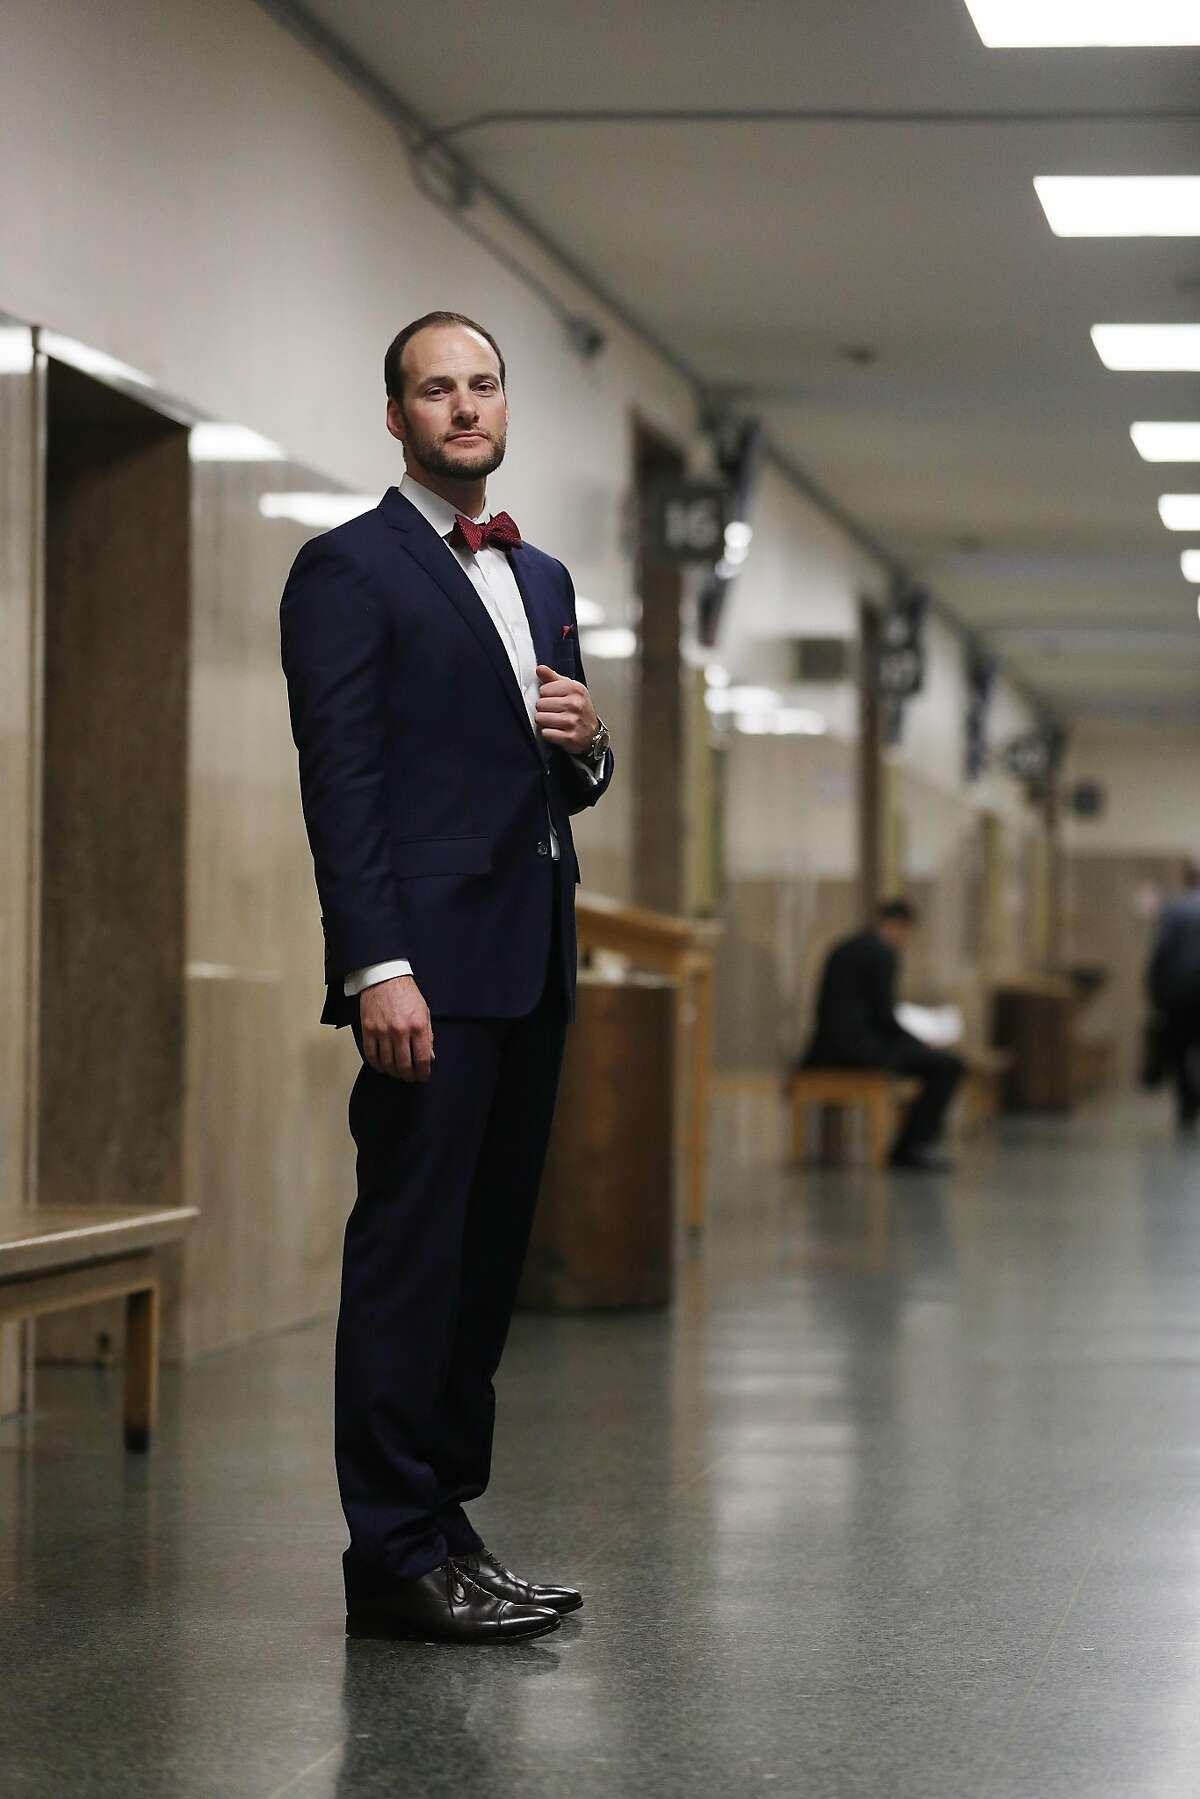 Deputy Public Defender Chesa Boudin stands for a portrait at the Hall of Justice on Monday, January 14, 2019 in San Francisco, Calif.